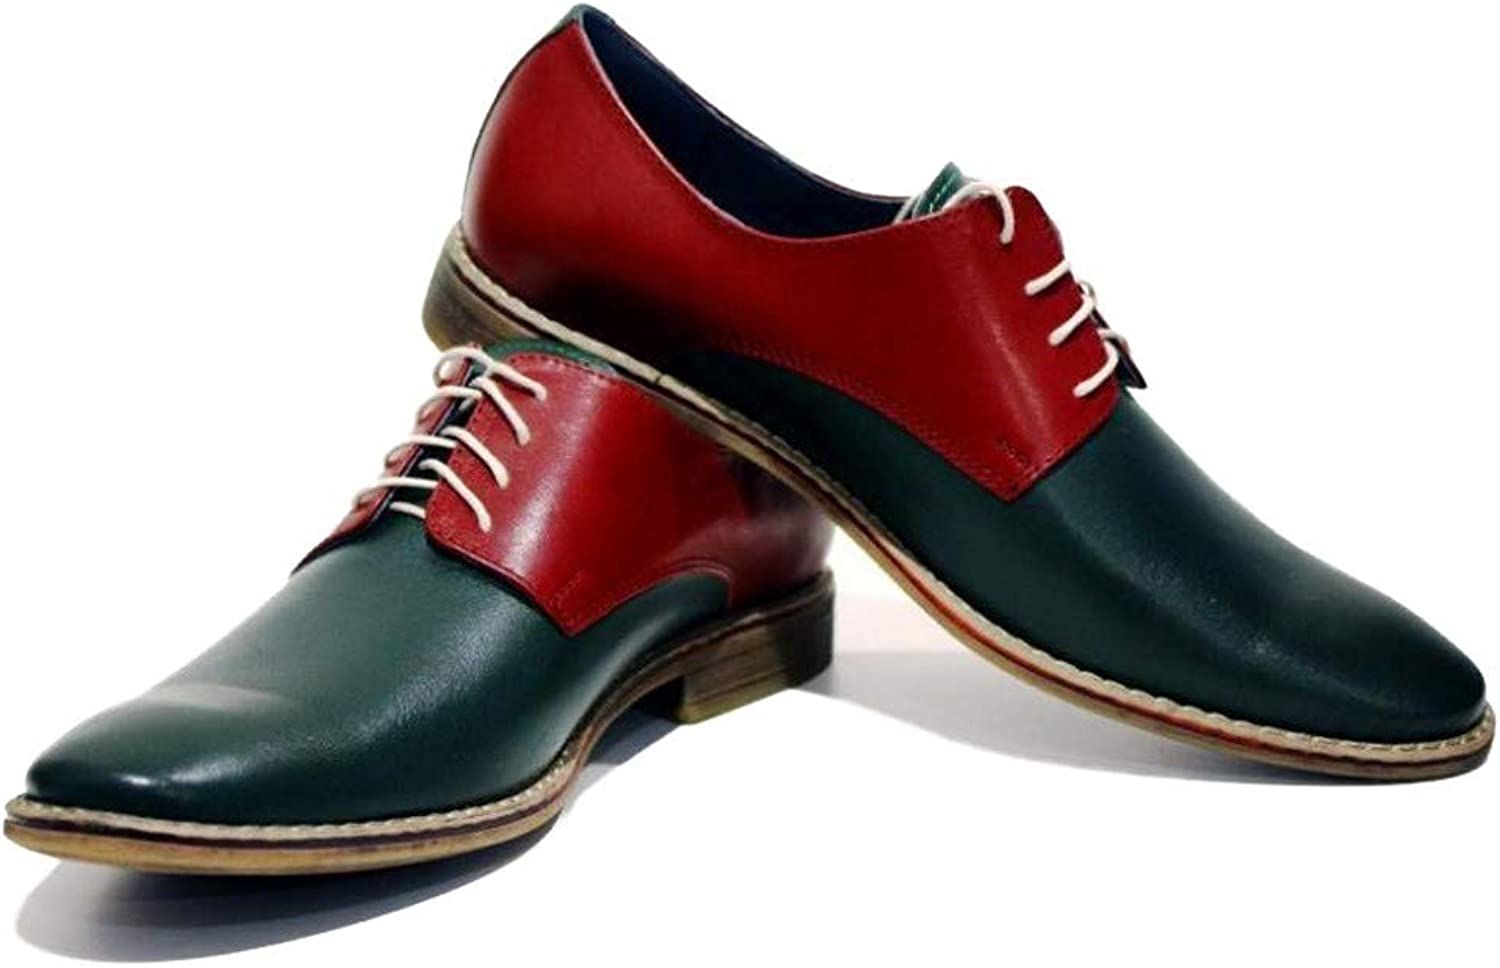 aa02592b7ef Modello Albenga - Handmade Italian Leather Mens color Red Red Red ...